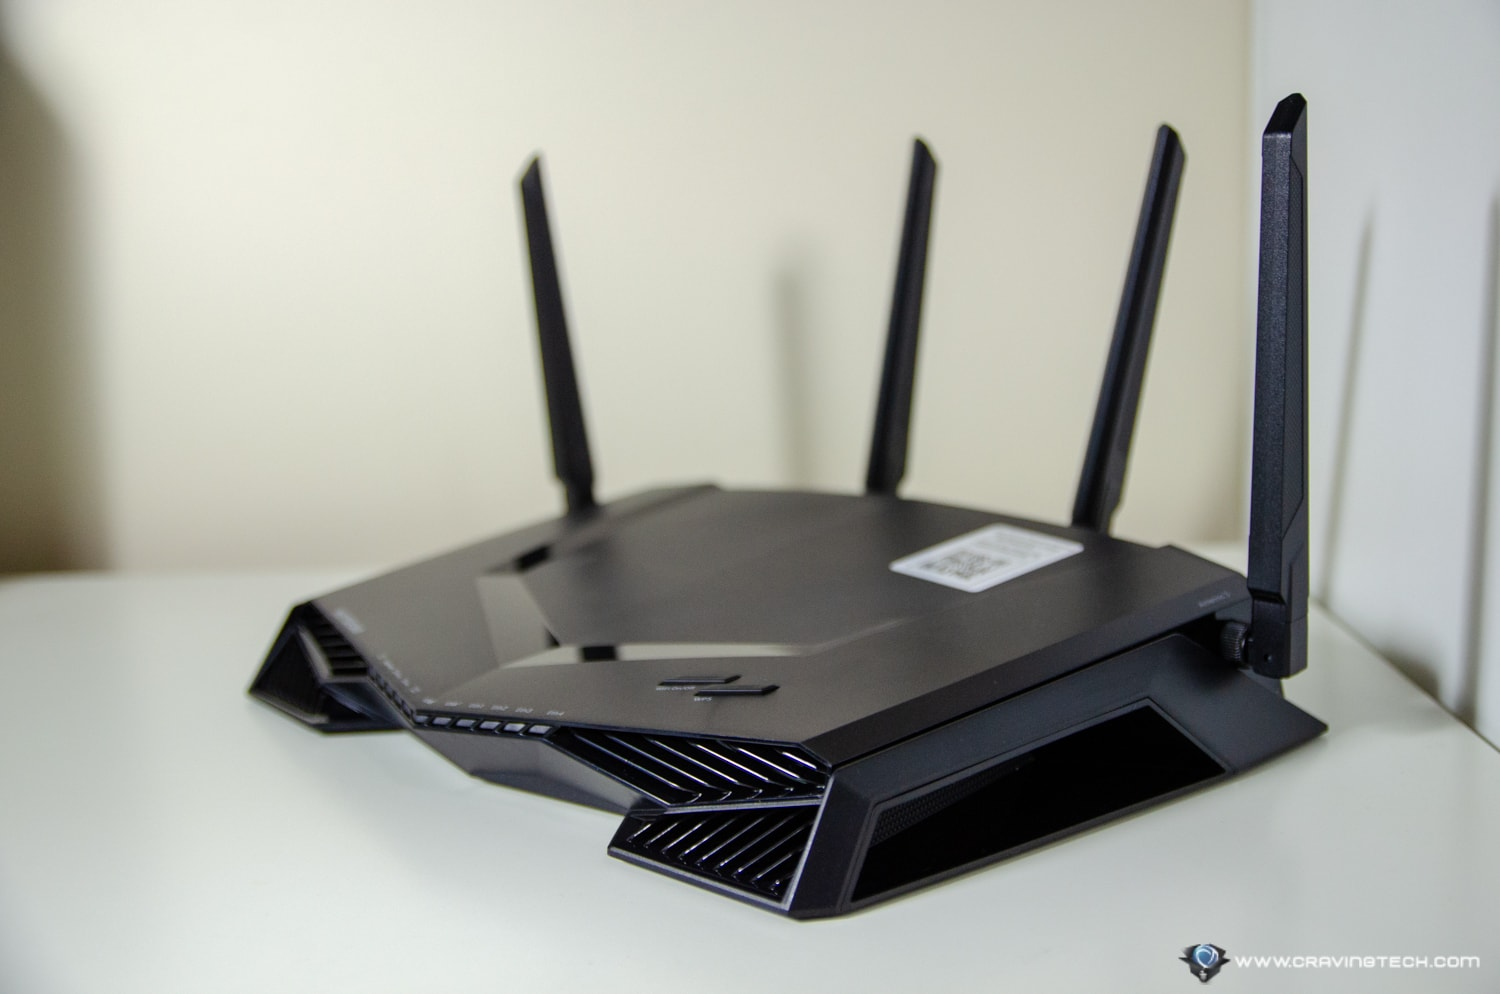 NETGEAR Nighthawk Pro XR500 Gaming Router